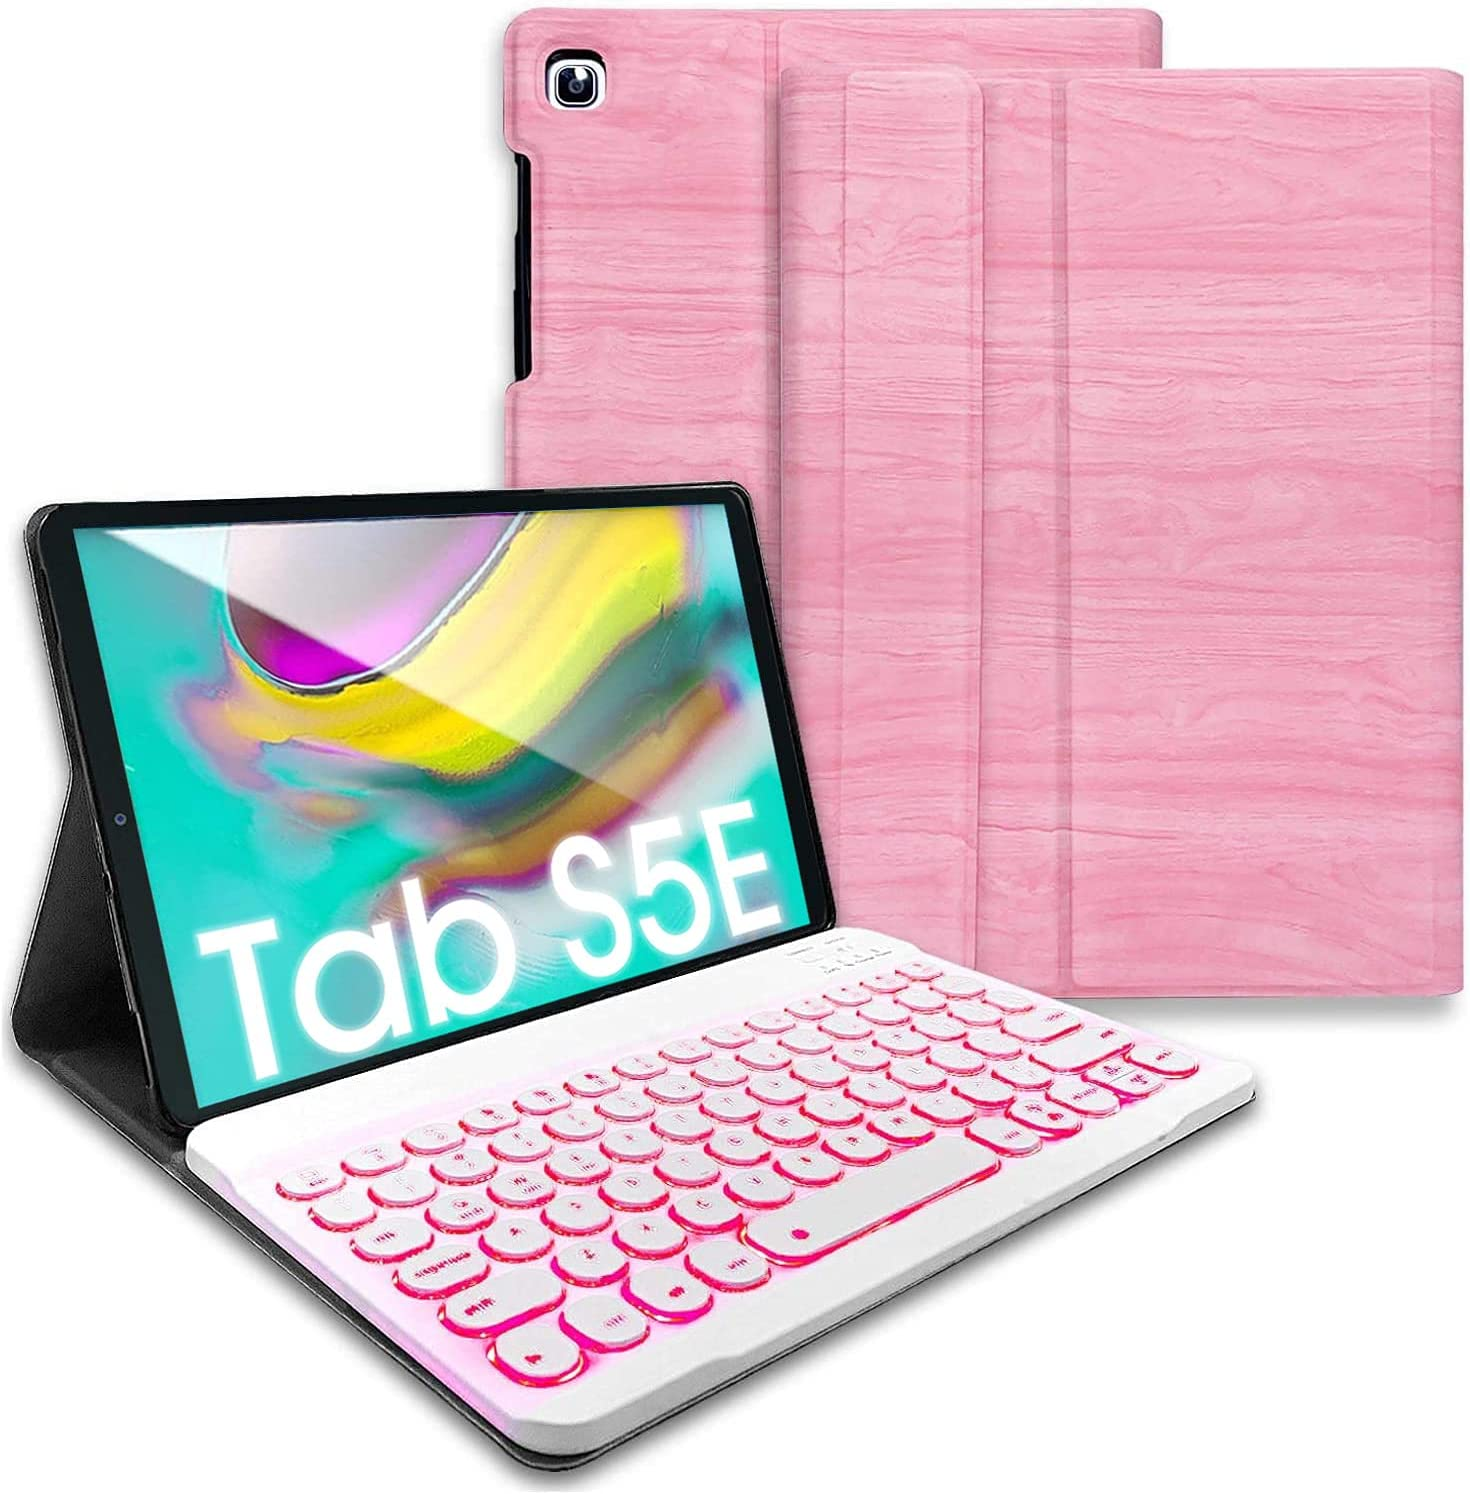 REAL-EAGLE Galaxy Tab S5e 2019 Backlit Keyboard Case SM-T720 SM-T725 SM-T727, 7 Color Backlights Detachable Wireless Keyboard Protective Case Cover for Samsung Galaxy Tab S5e 10.5 Inch 2019, Pink